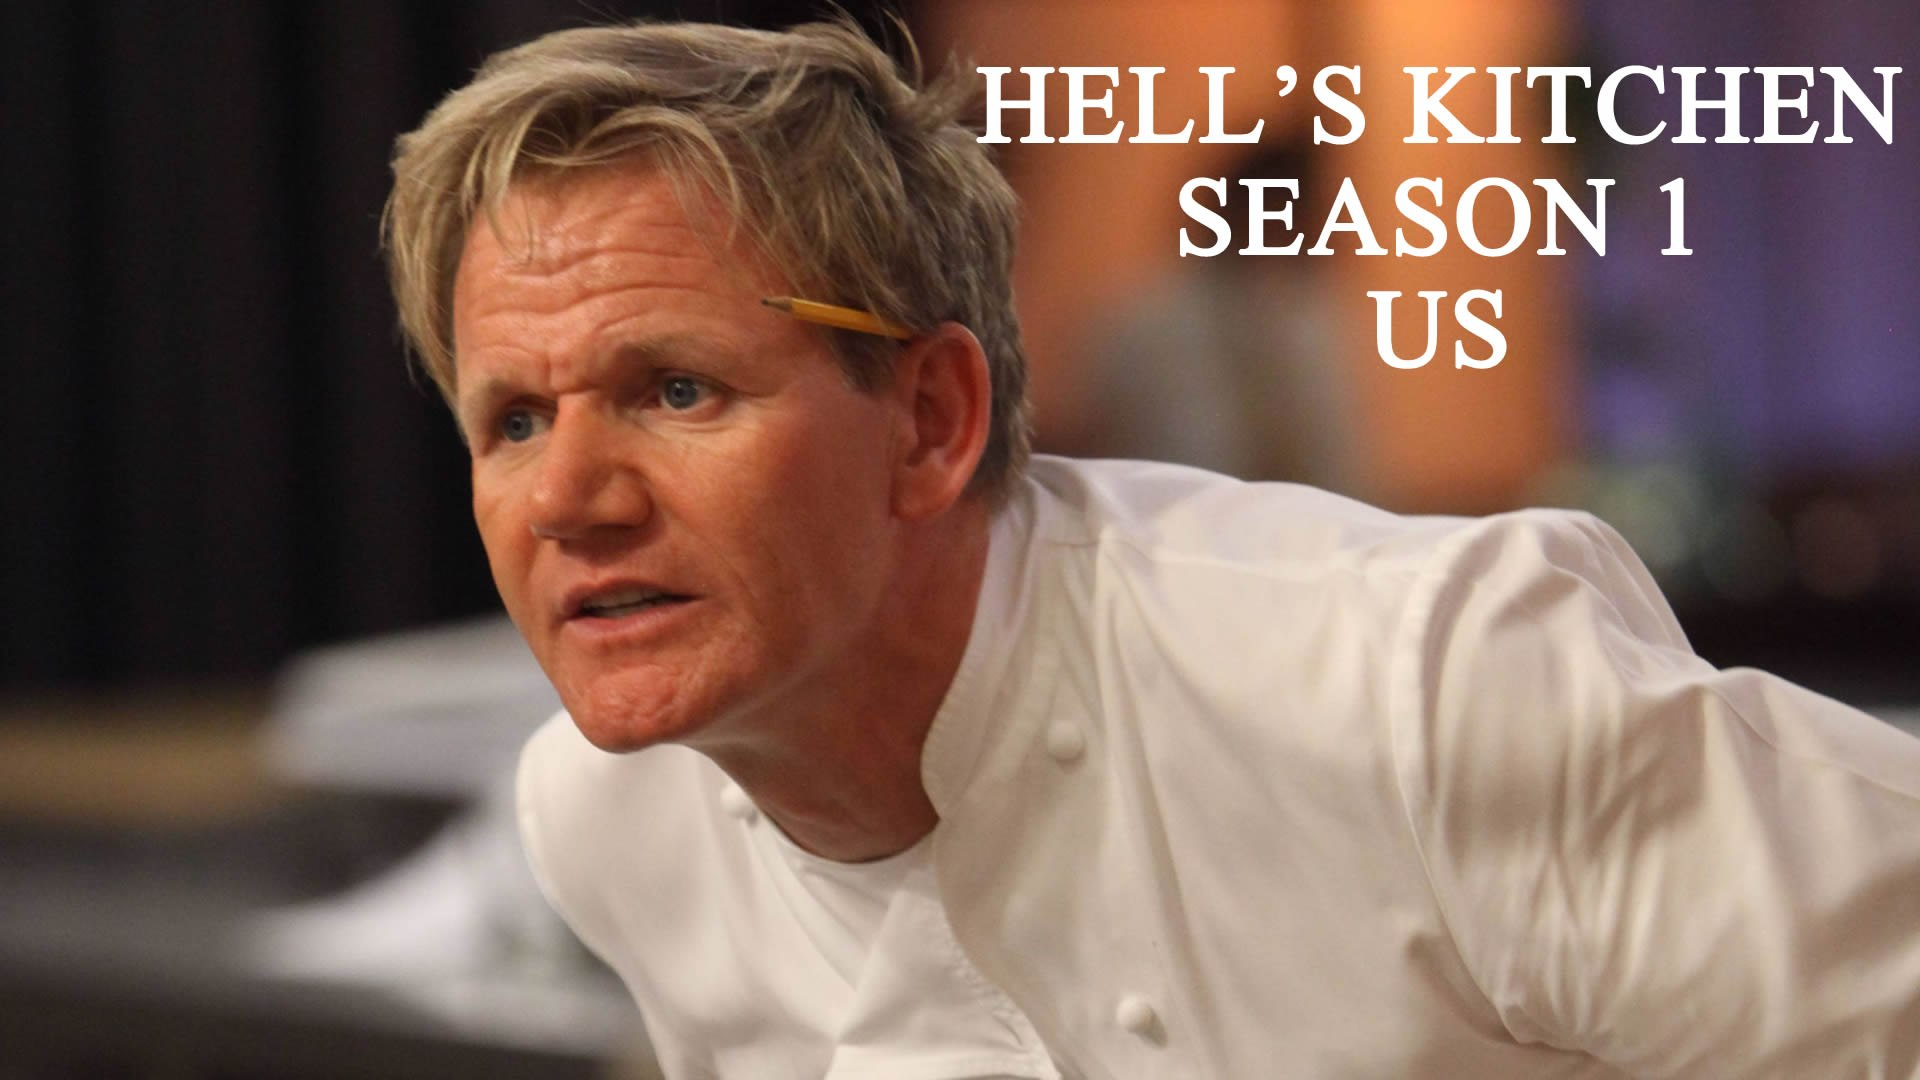 Hells Kitchen Season 1 Episode 1 S01e01